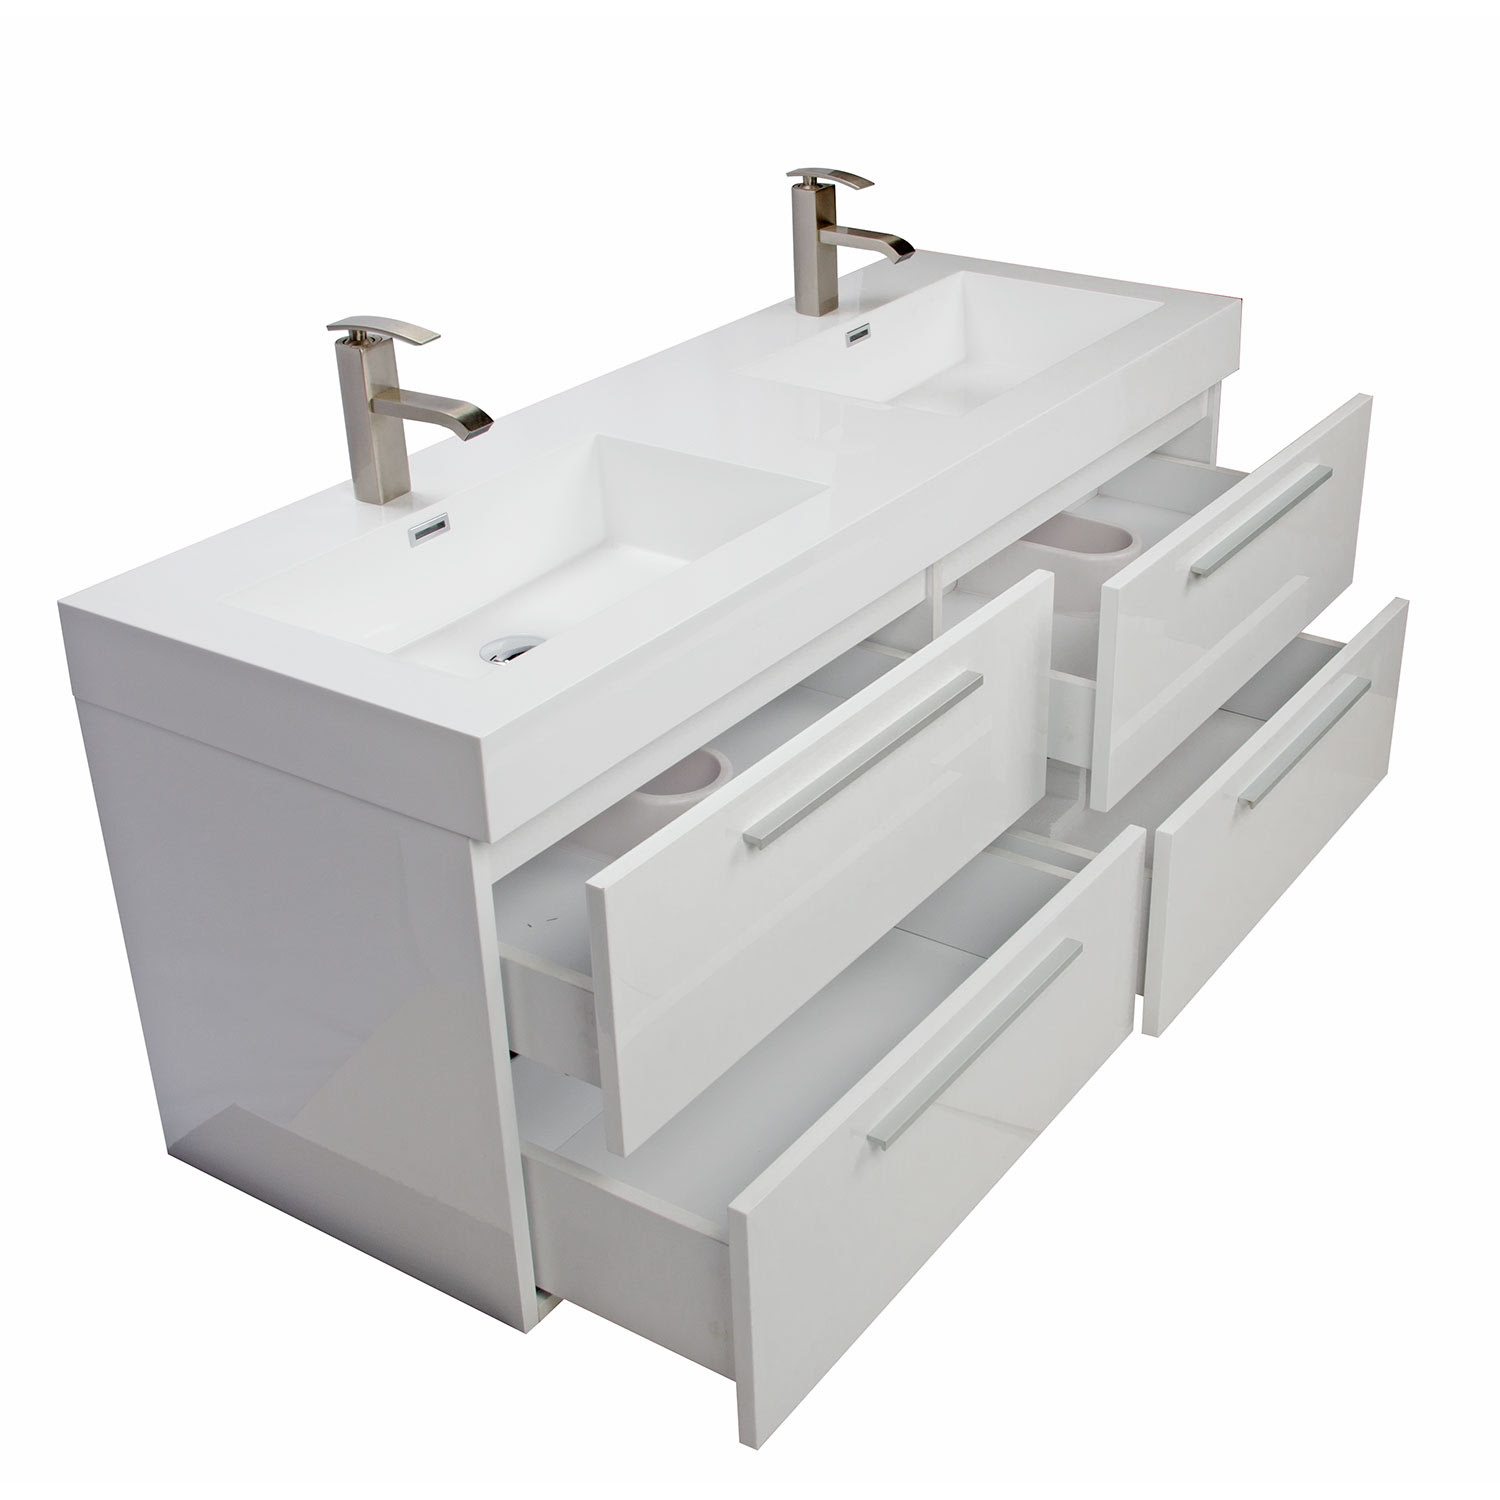 Buy 54 Inch Modern Double-sink Vanity Set with Drawers ...